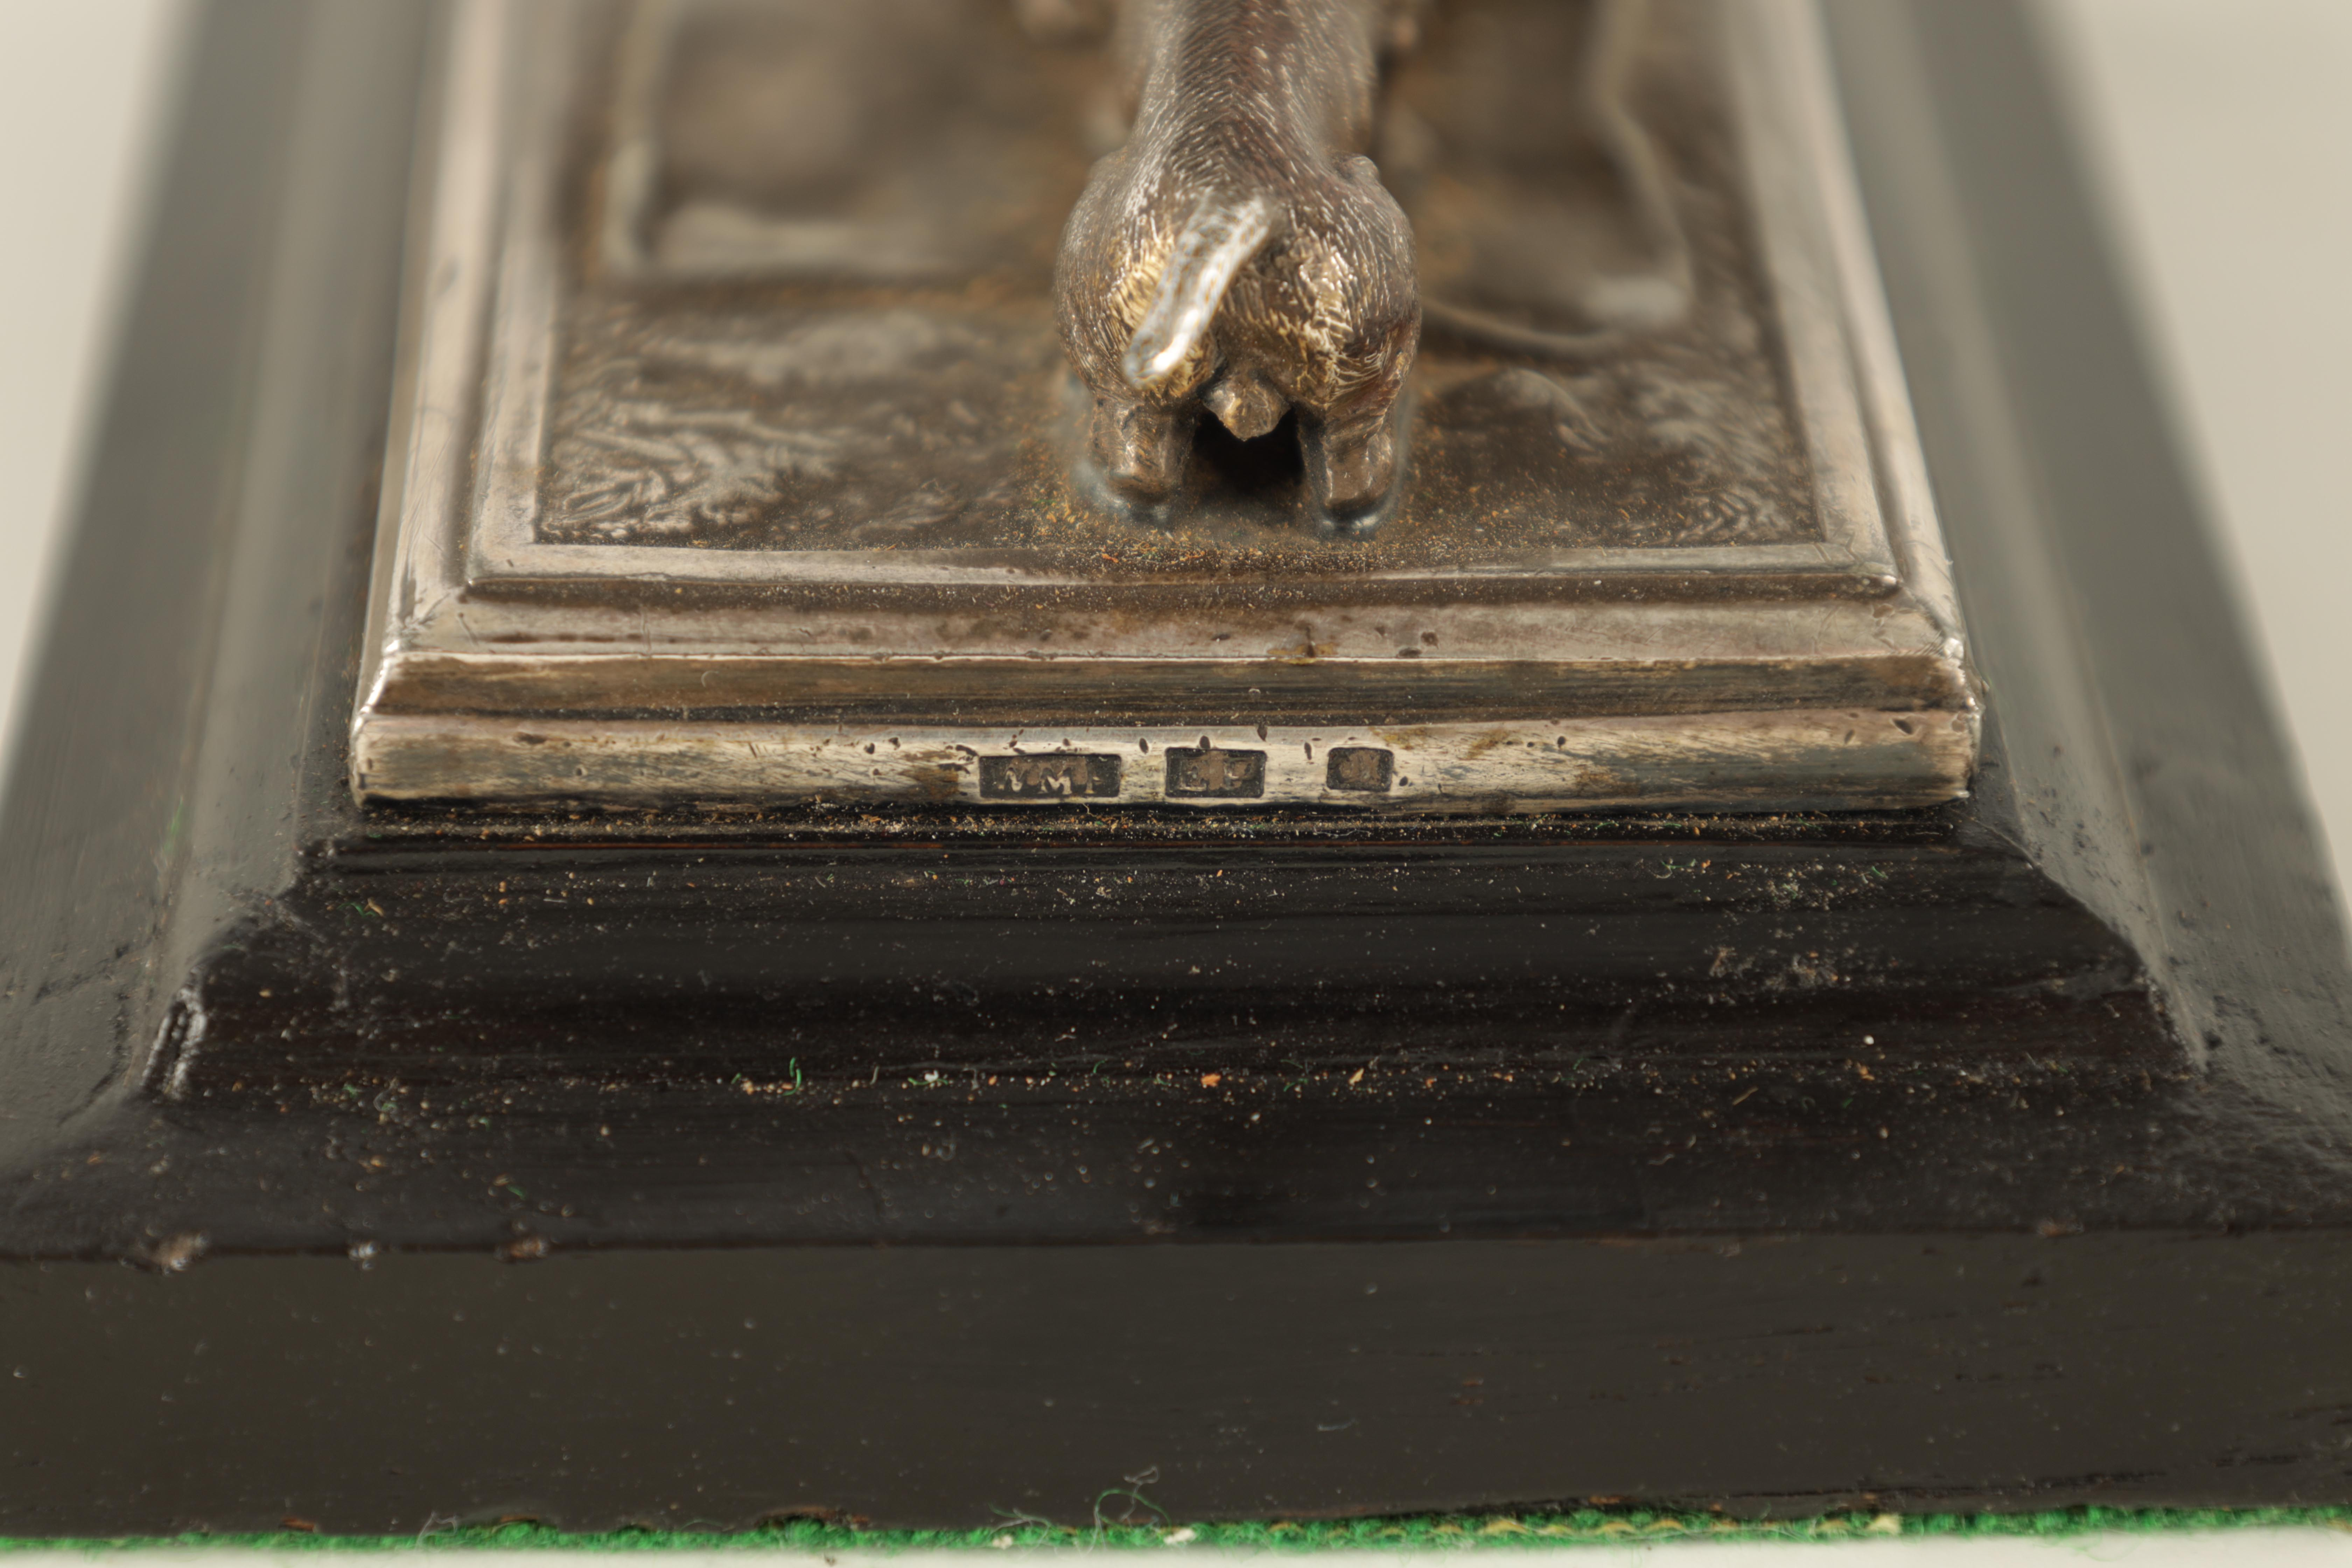 AN UNUSUAL 19TH CENTURY W.M.F. SILVERED METAL DESK PAPERWEIGHT depicting a small child with a - Image 5 of 5